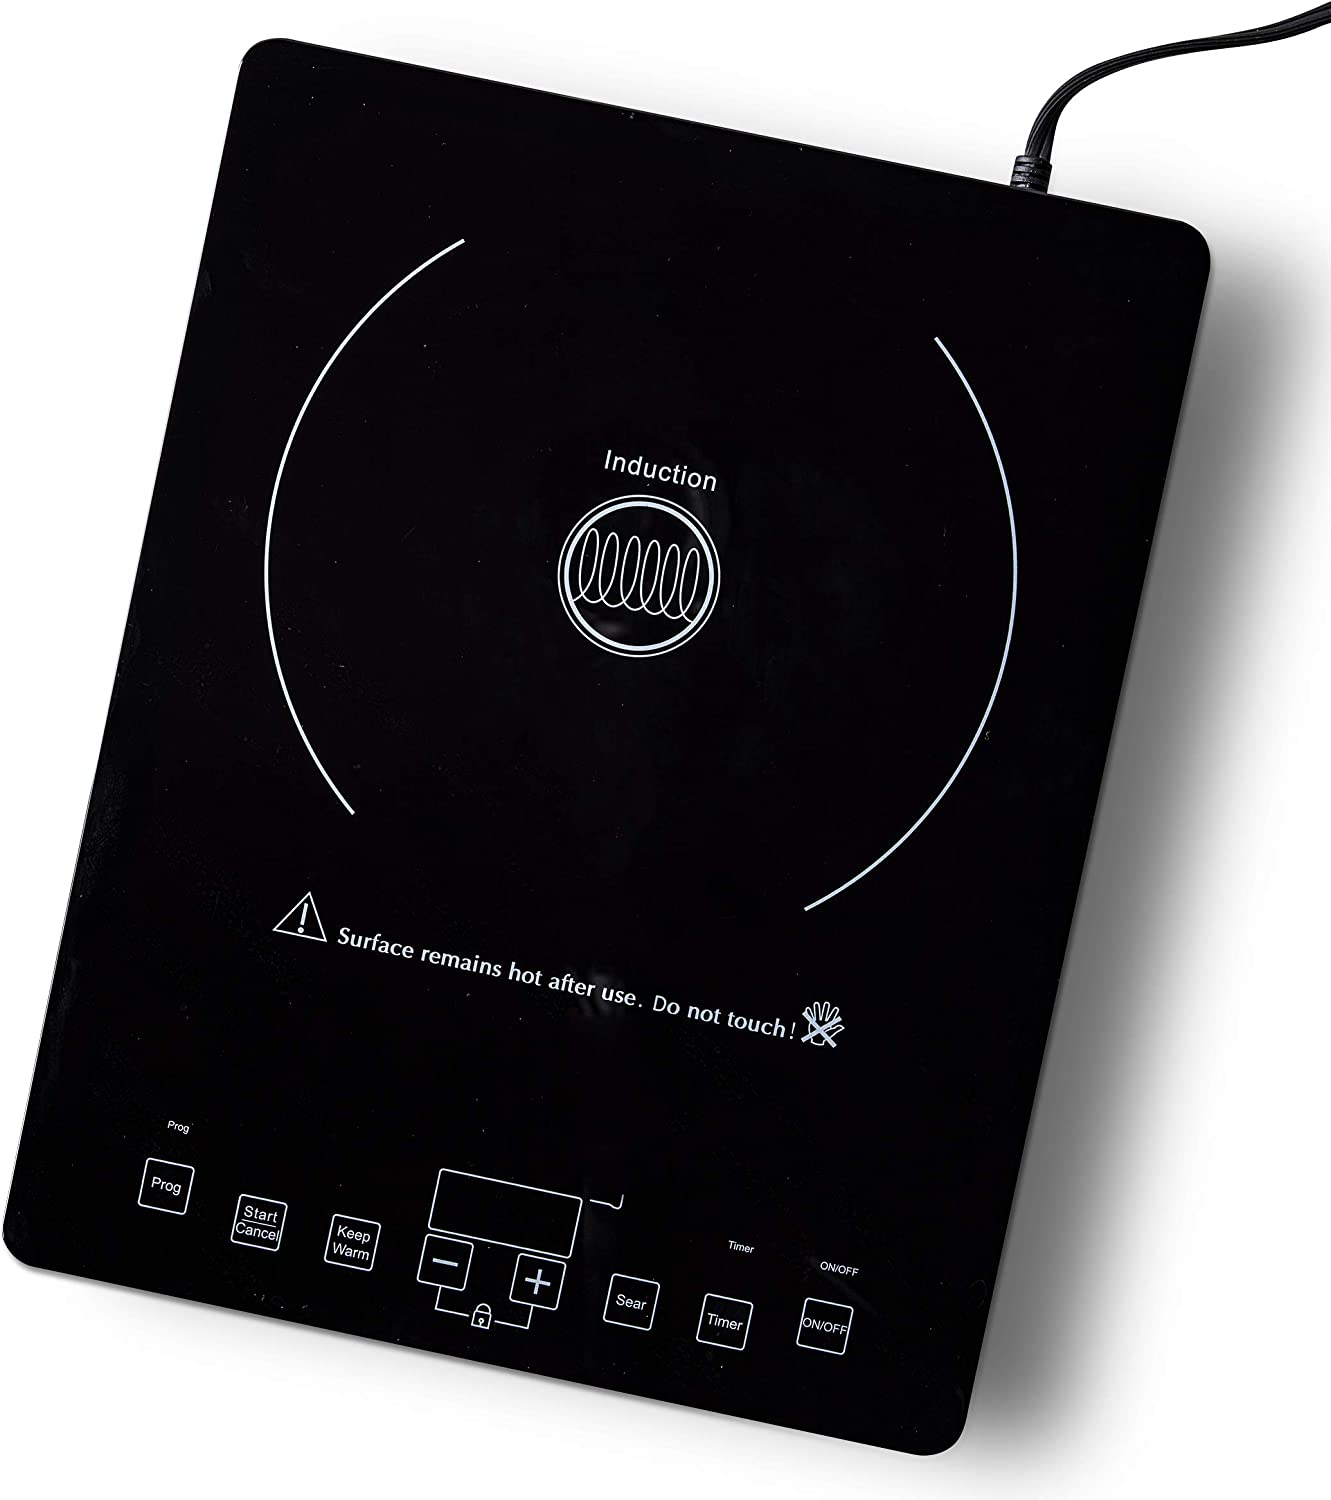 GreenPan CC002900-001 Cooker Countertop Induction Burner, One Size, Black